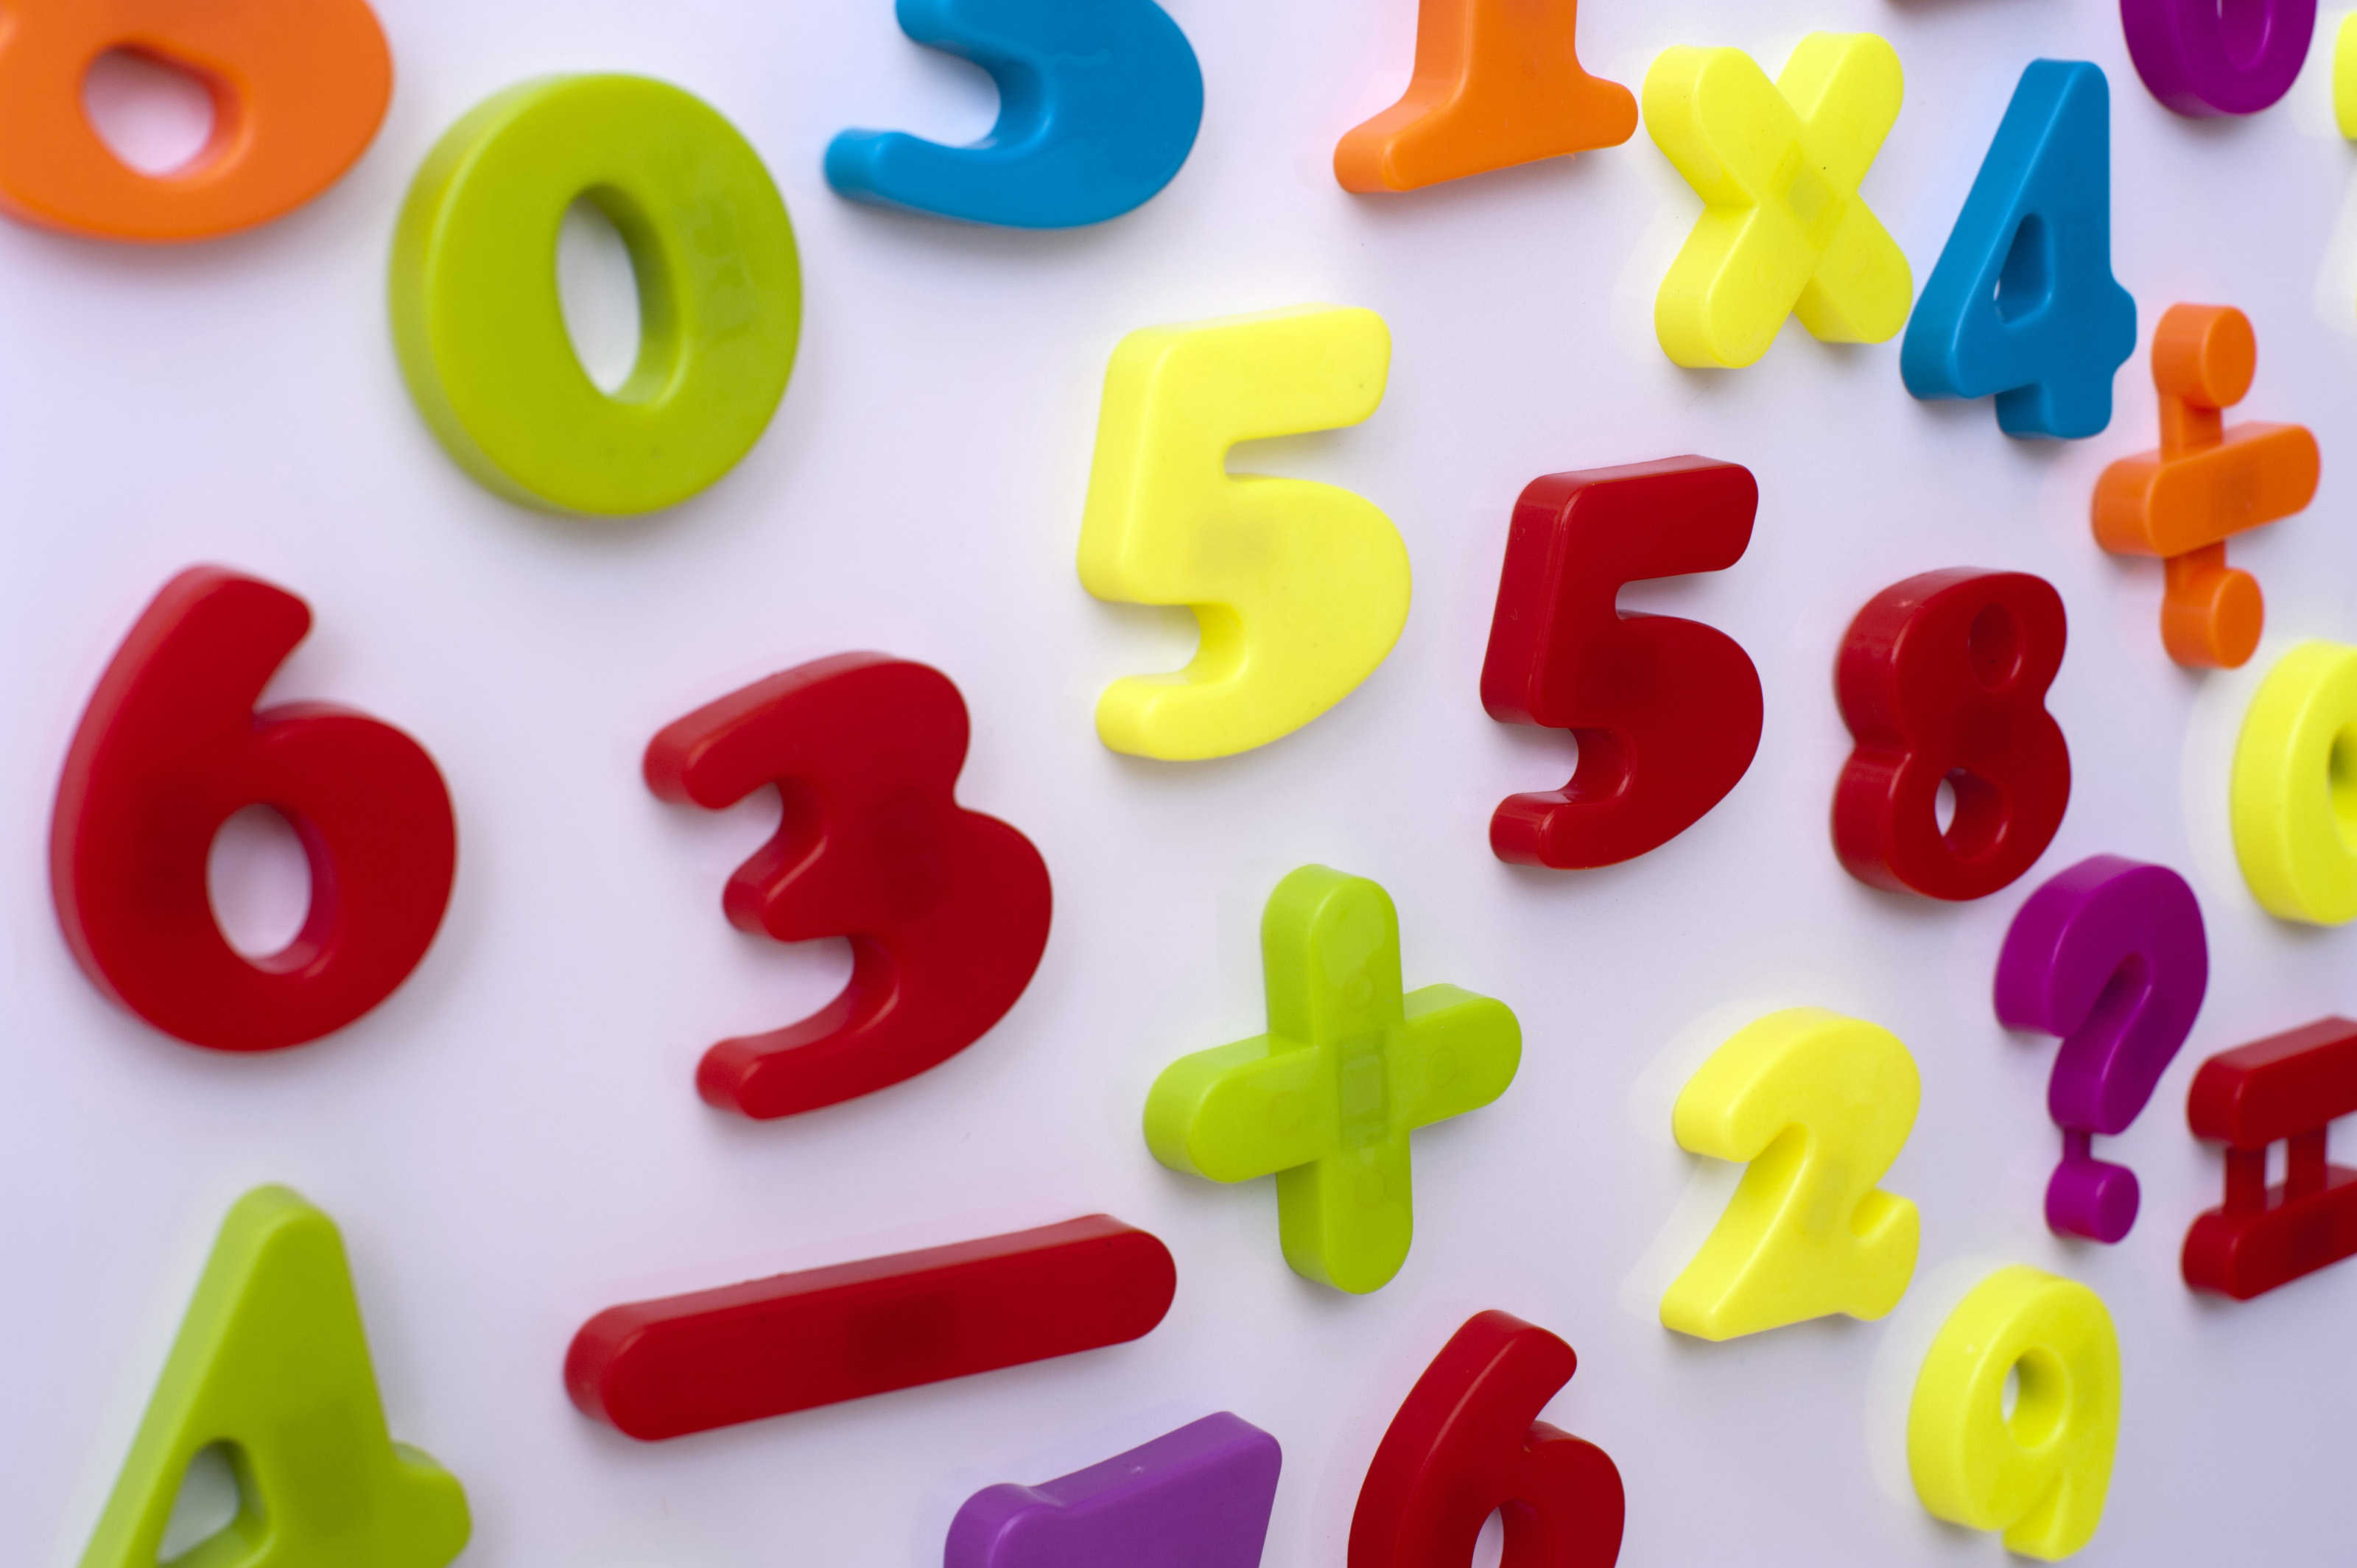 Maths In Early Years How To Support Children At Home